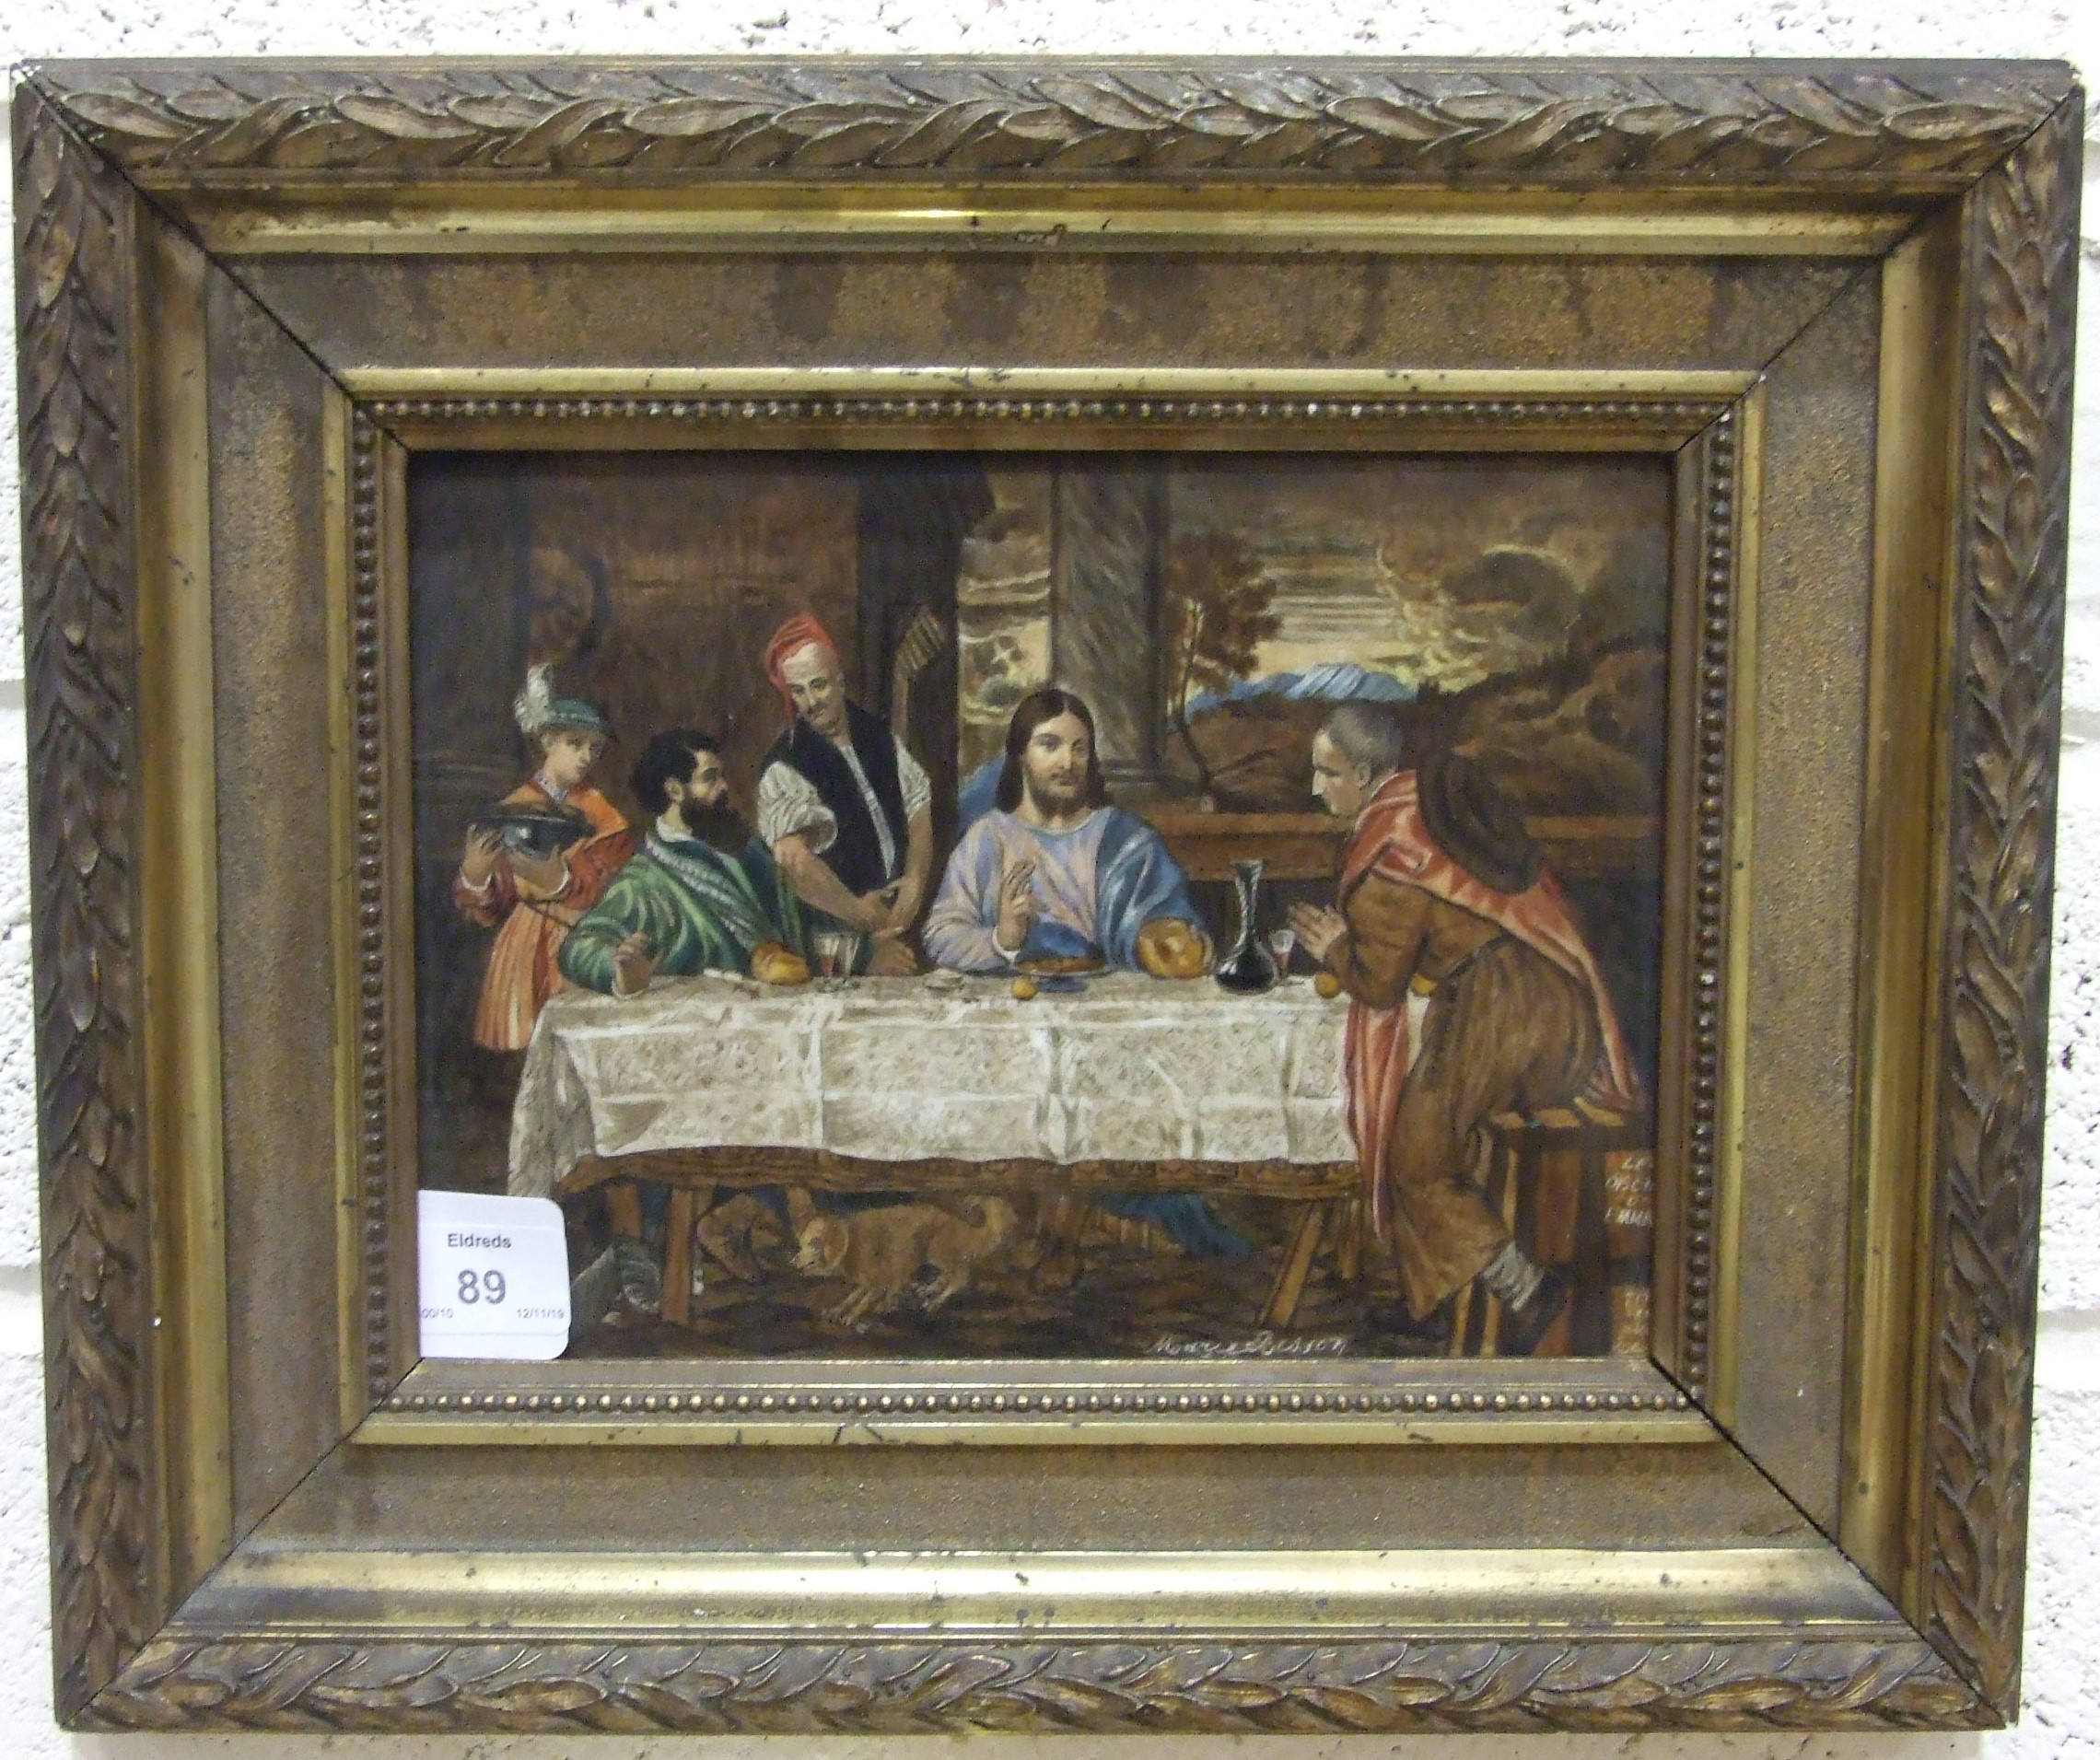 Lot 89 - A French rectangular ceramic plaque painted by Marie Besson, copy of a Titian painting 'Les